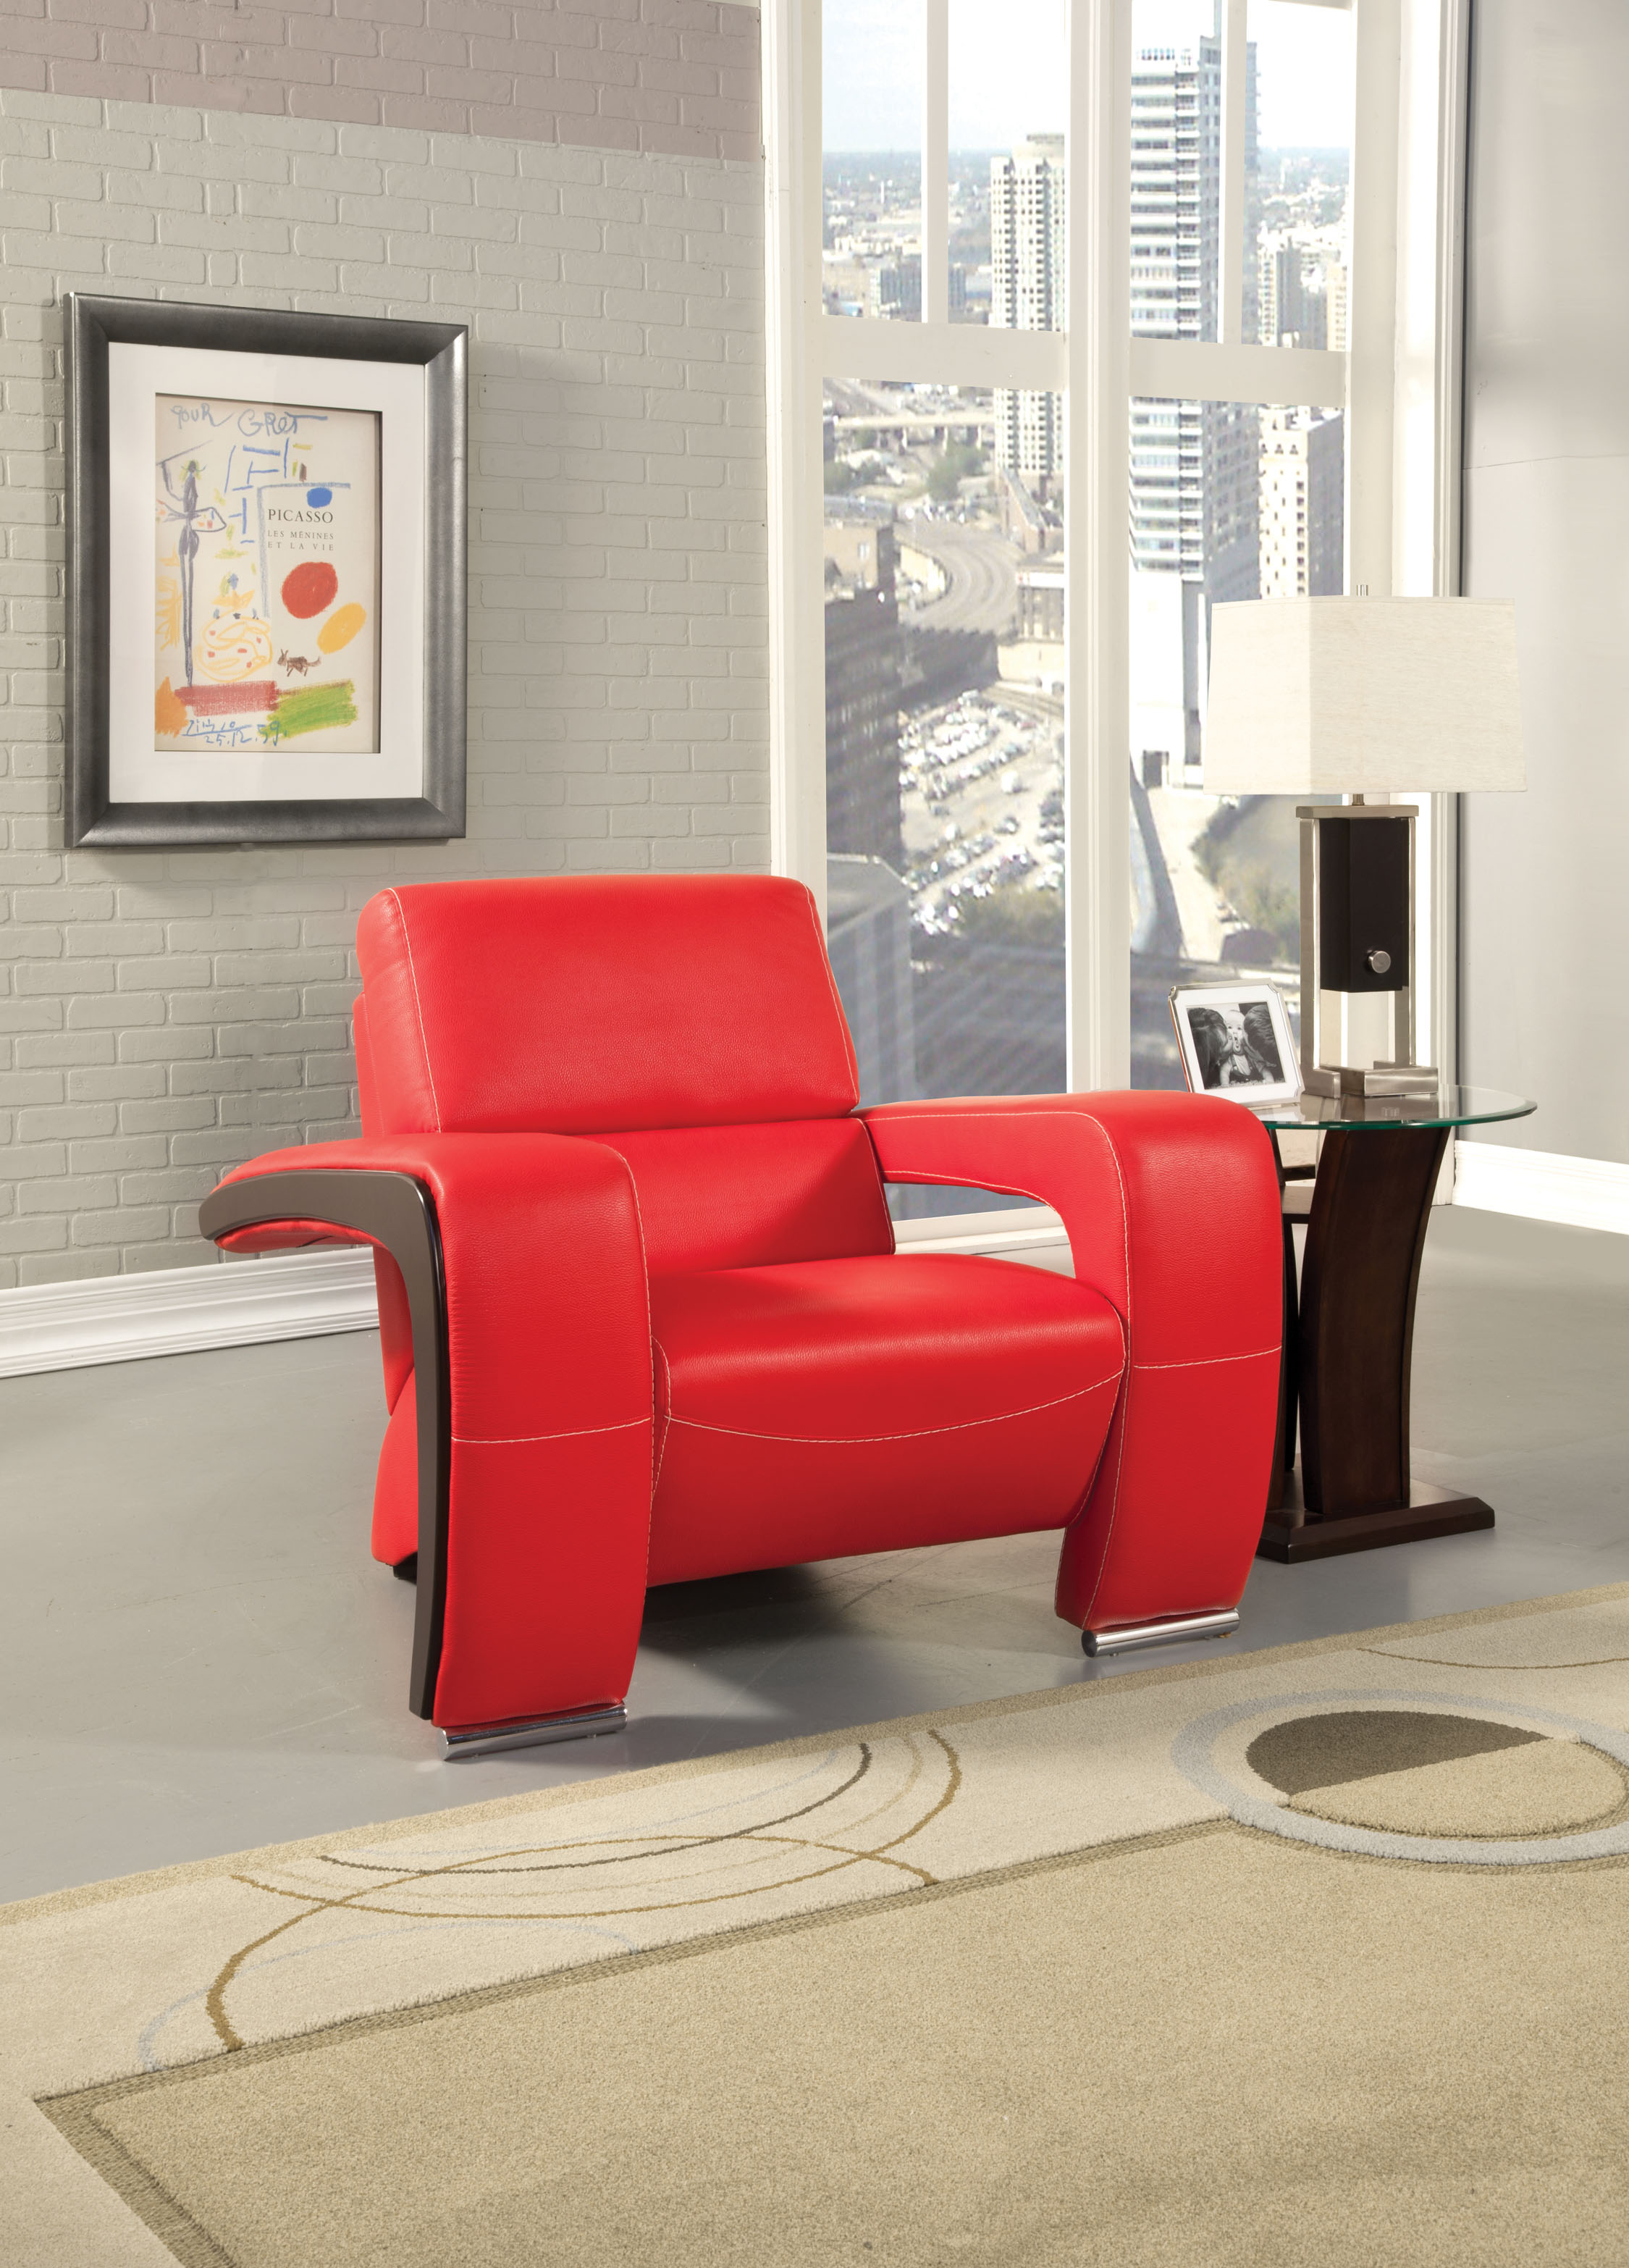 Enjoy Your Favorite Sofa with Sears Recliners for Cozy Living Room: Sears Sofa | Sears Sofa Bed | Sears Recliners